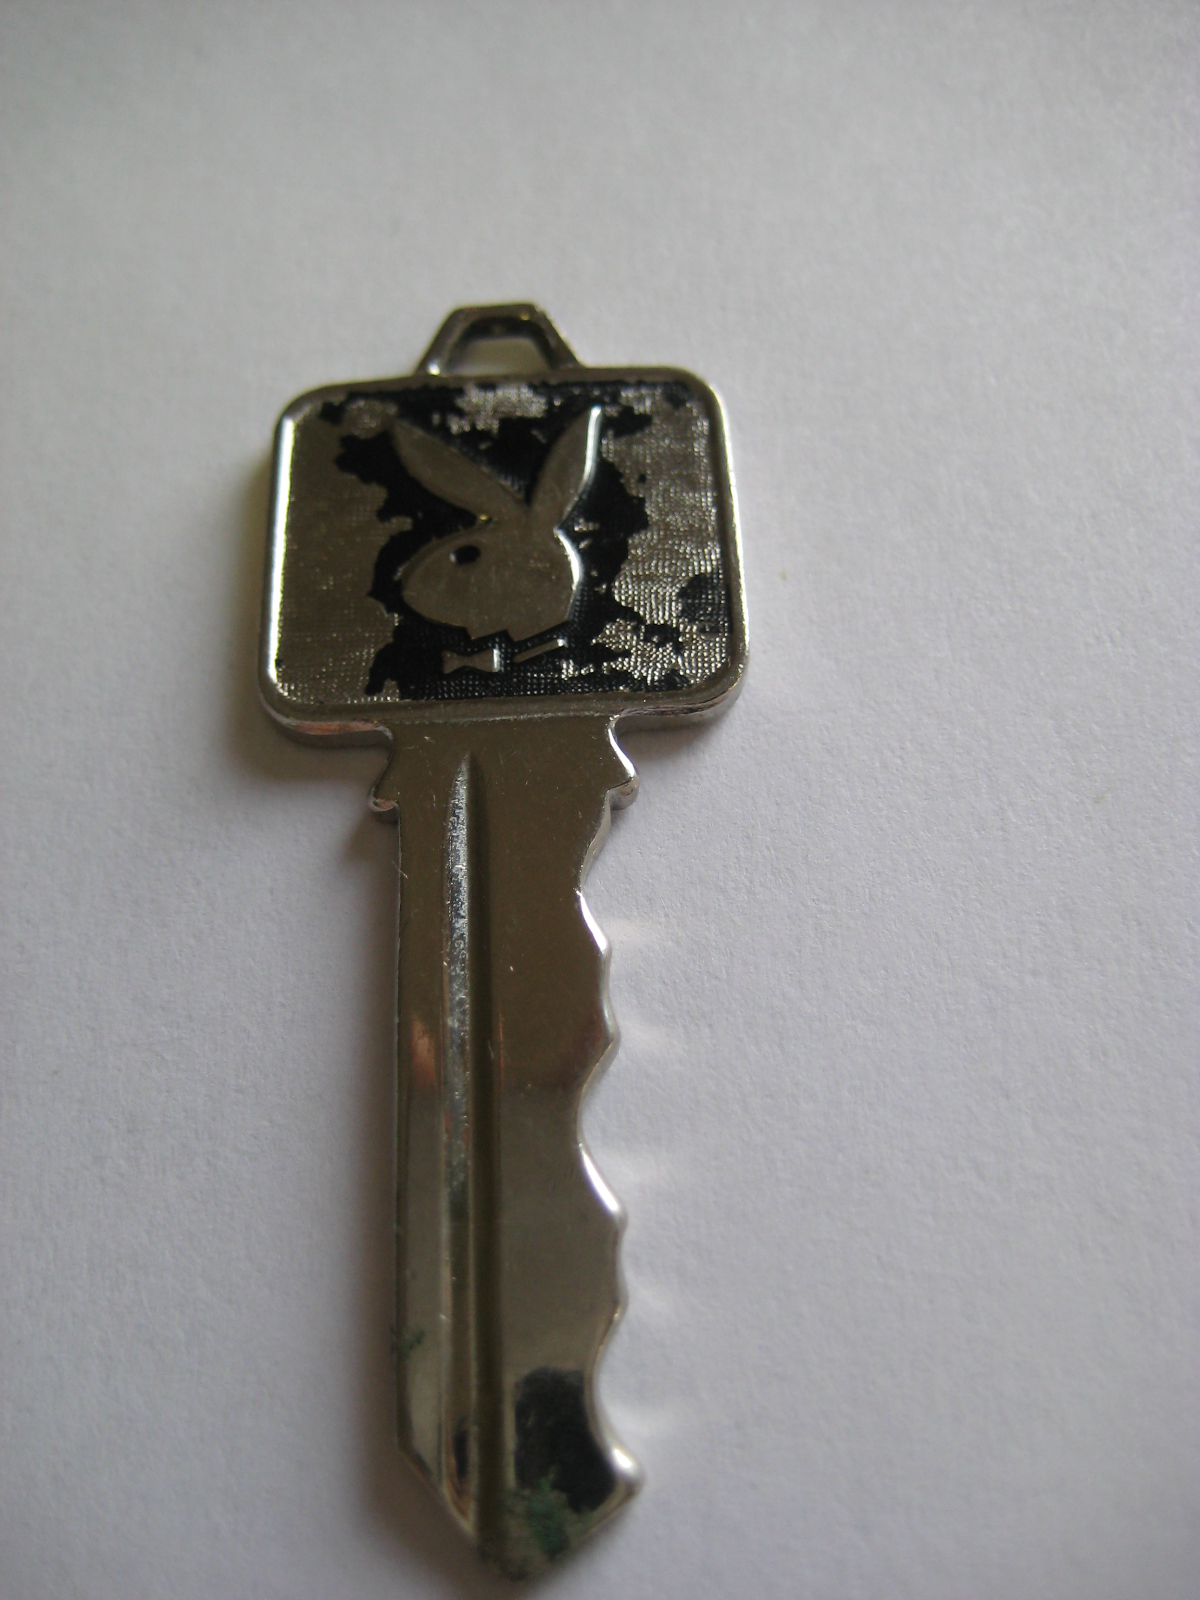 Philippines Playboy Club Key